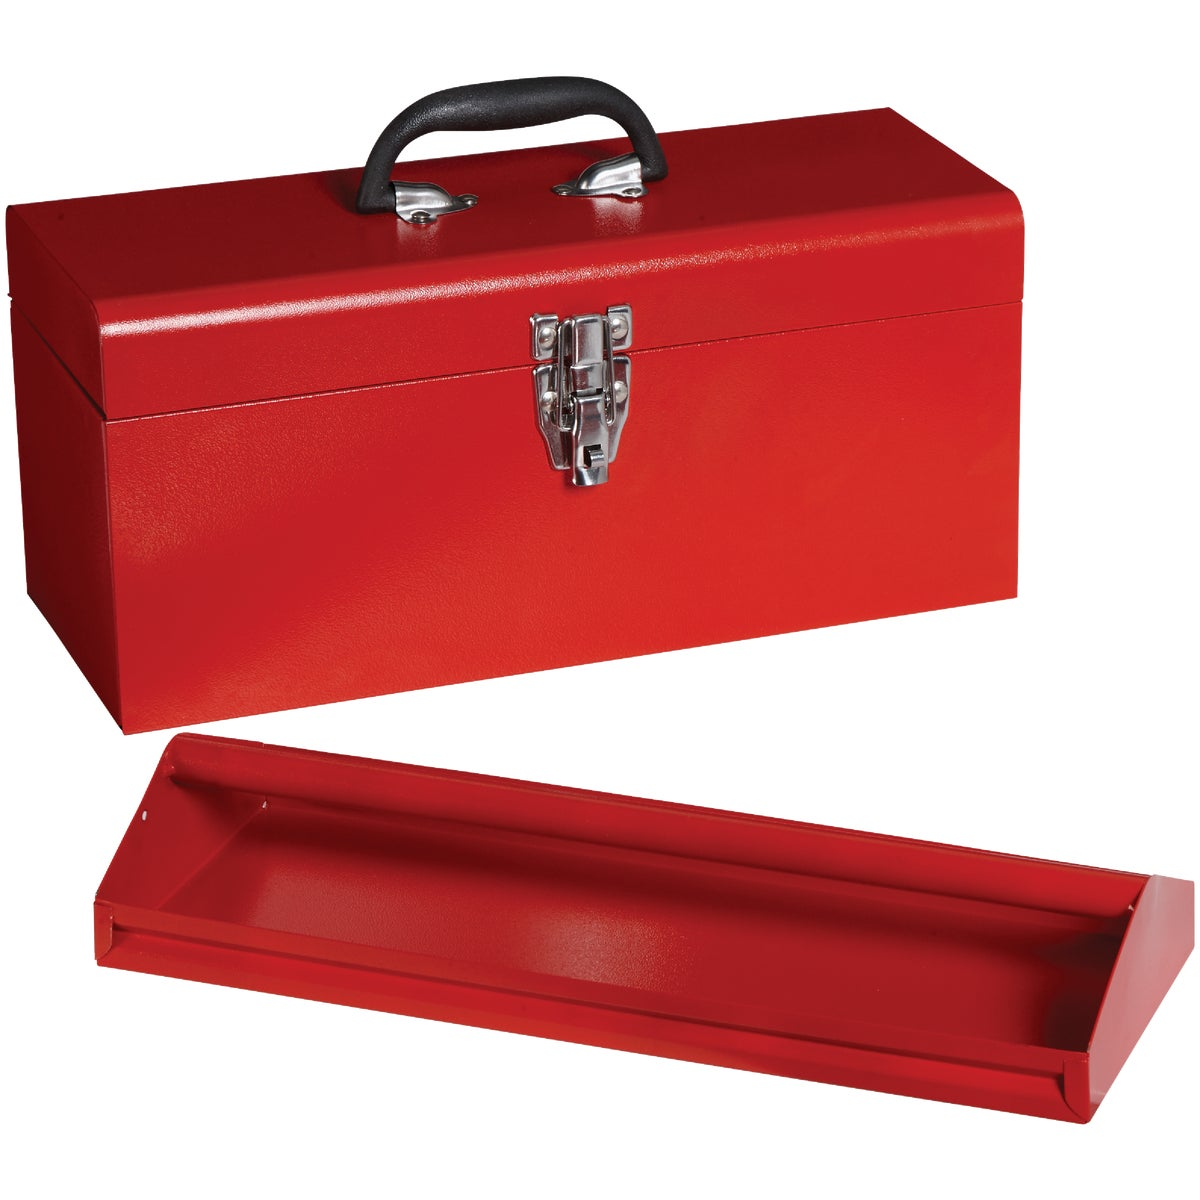 "16"" METAL TOOLBOX - 398608 by Do it Best GS"